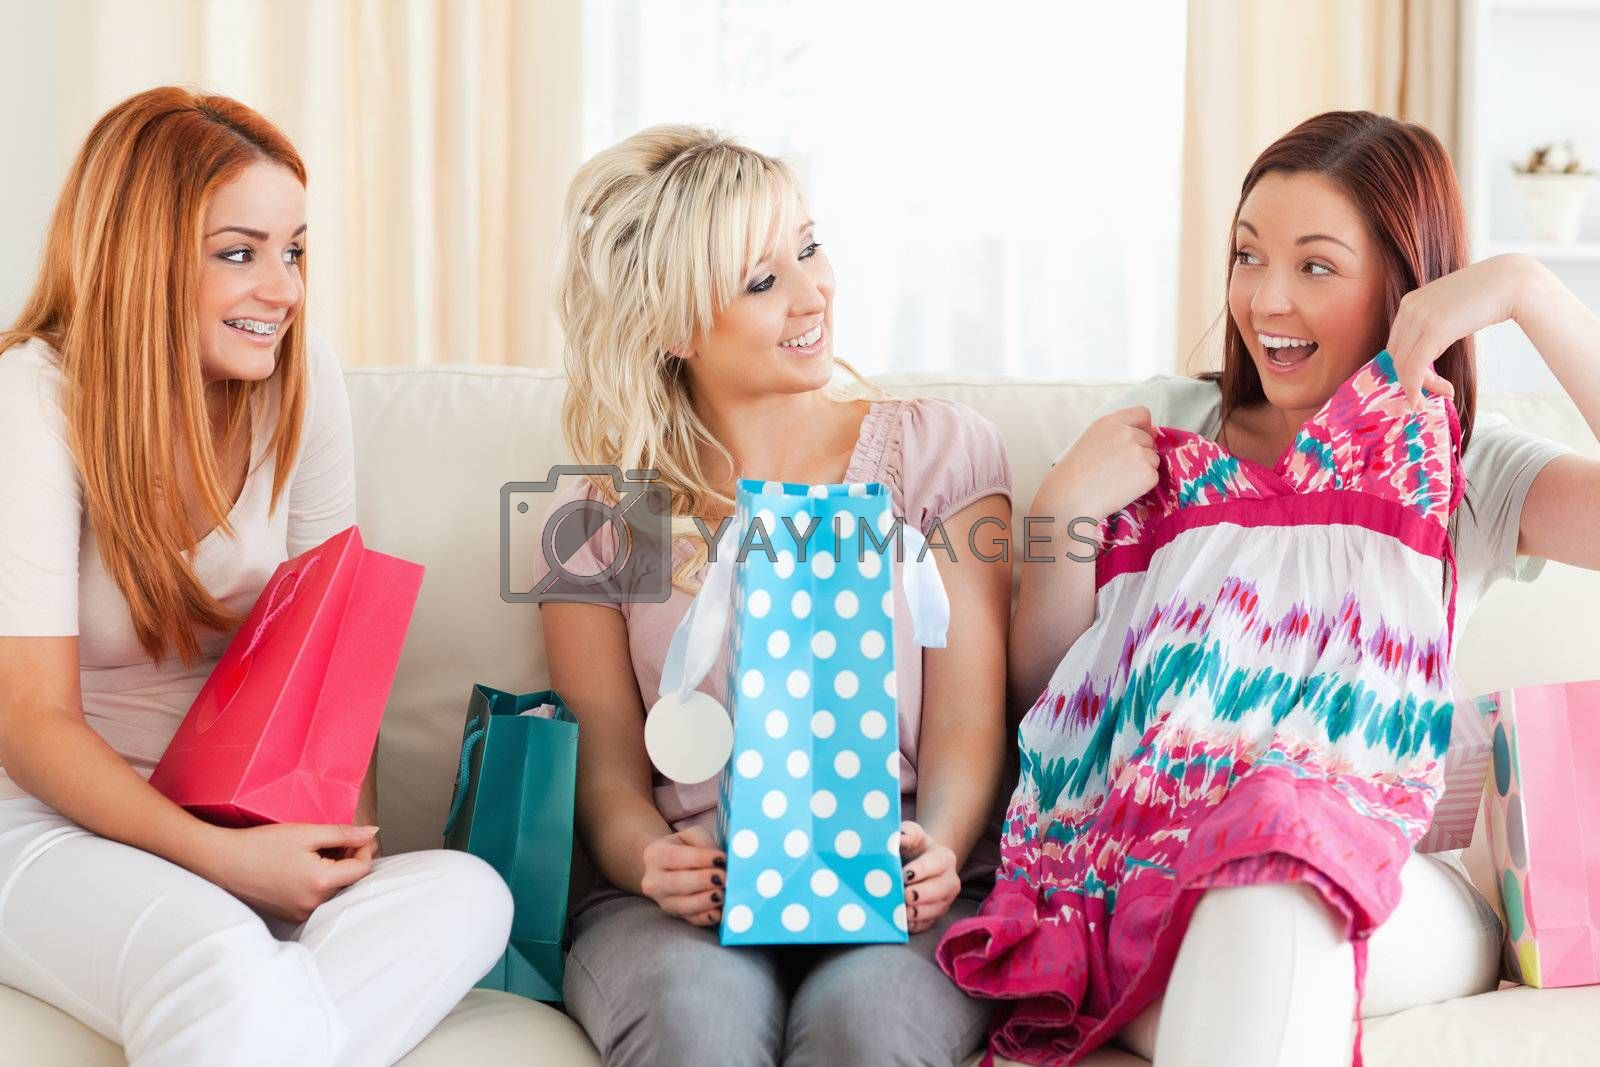 Cute Women with shopping bags in a living room